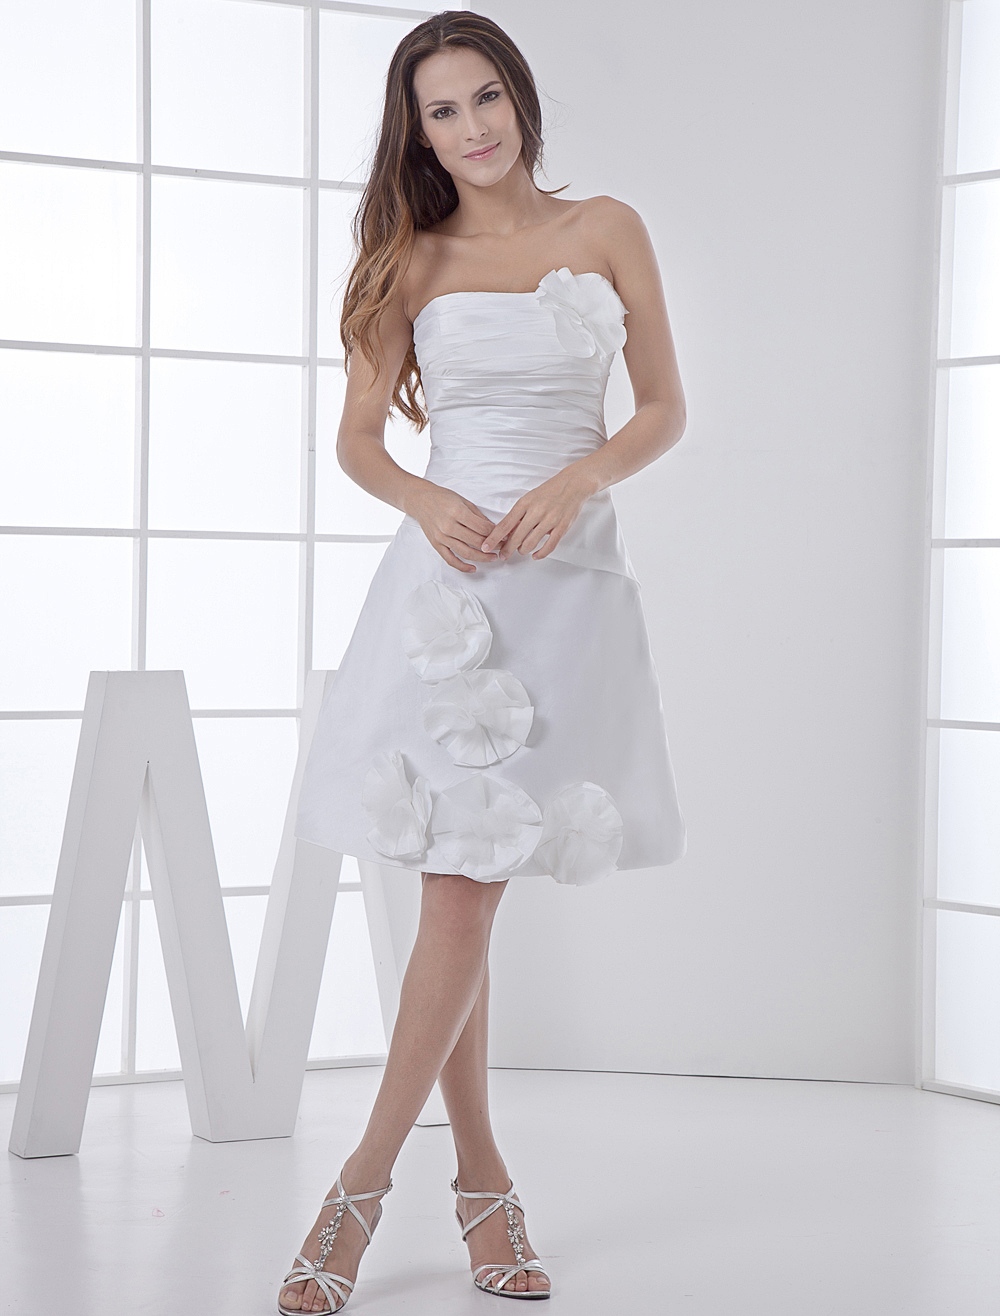 ... -Length Strapless Flowers Ruched Taffeta Wedding Gown - Milanoo.com